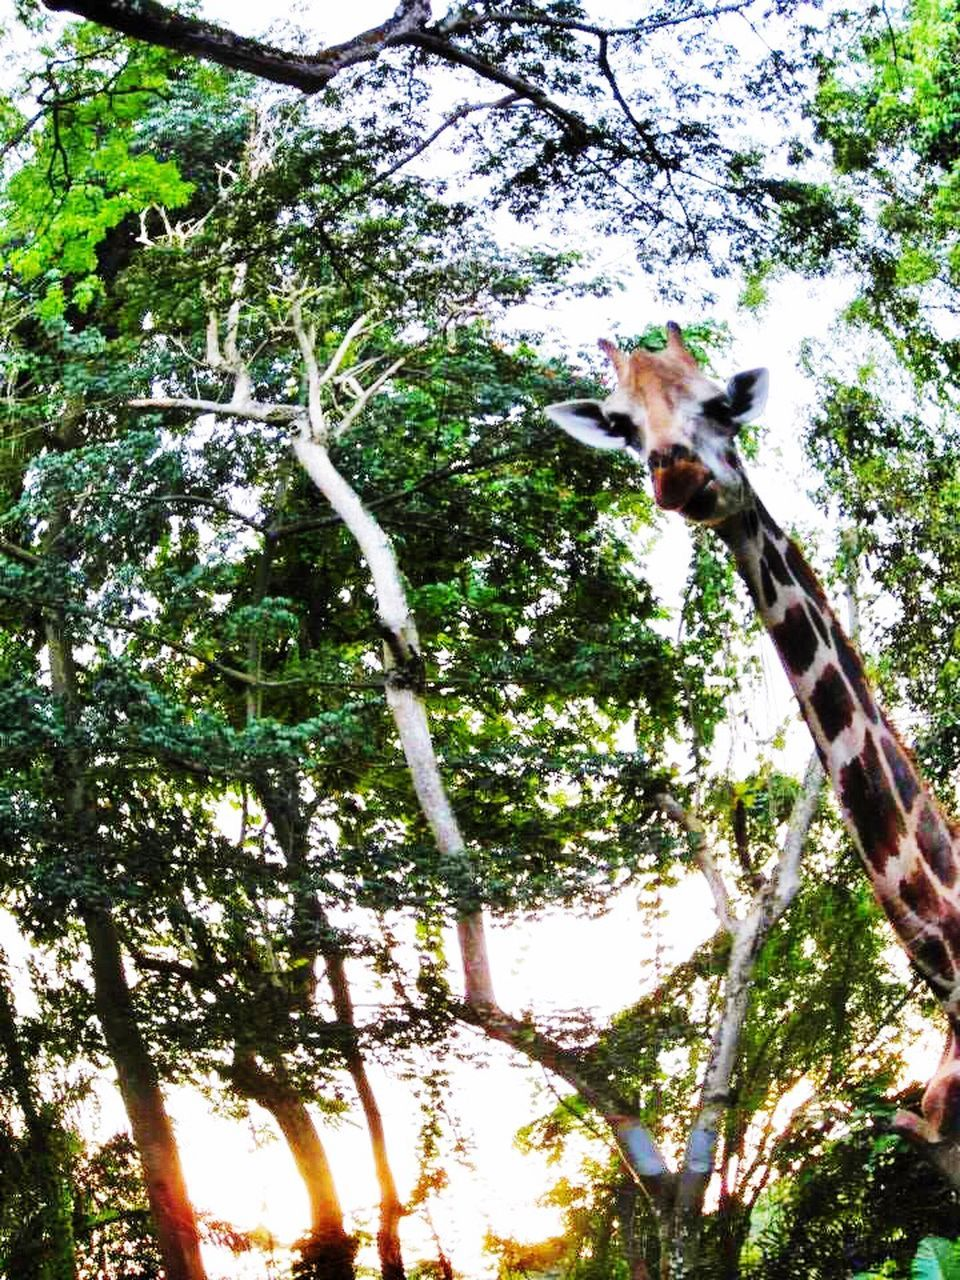 tree, one animal, animal themes, low angle view, mammal, day, herbivorous, branch, tree trunk, domestic animals, no people, nature, outdoors, giraffe, growth, hanging, animals in the wild